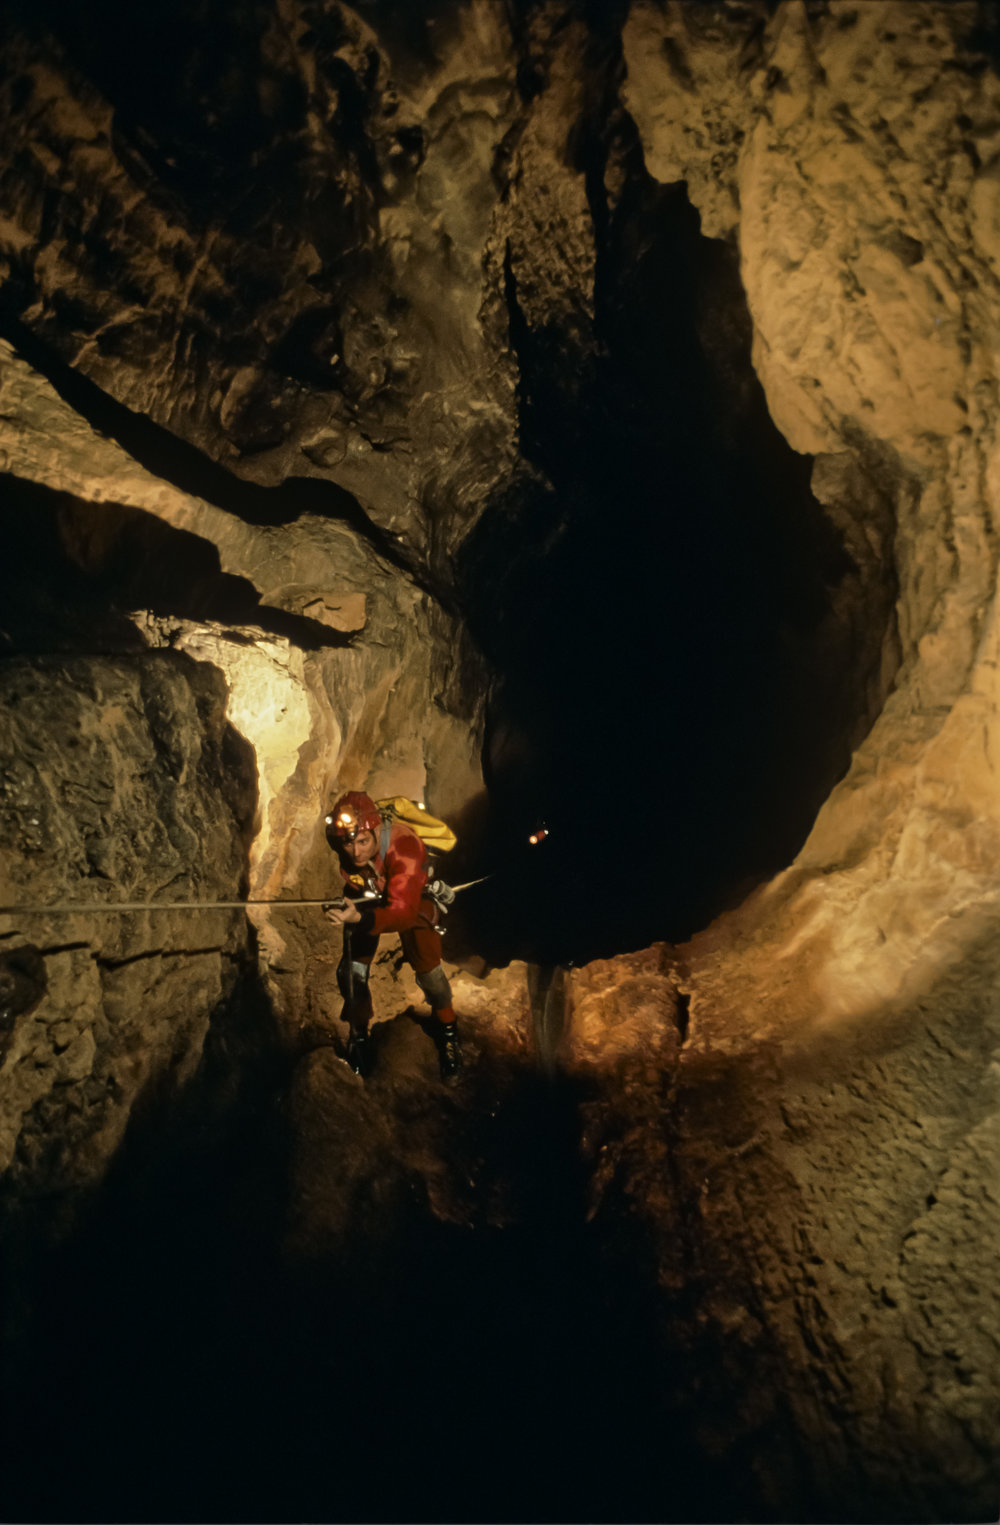 Noel Sloan descends the first pitch of the 100m Shaft. Photo by U. S. Deep Caving Team/Wes Skiles.